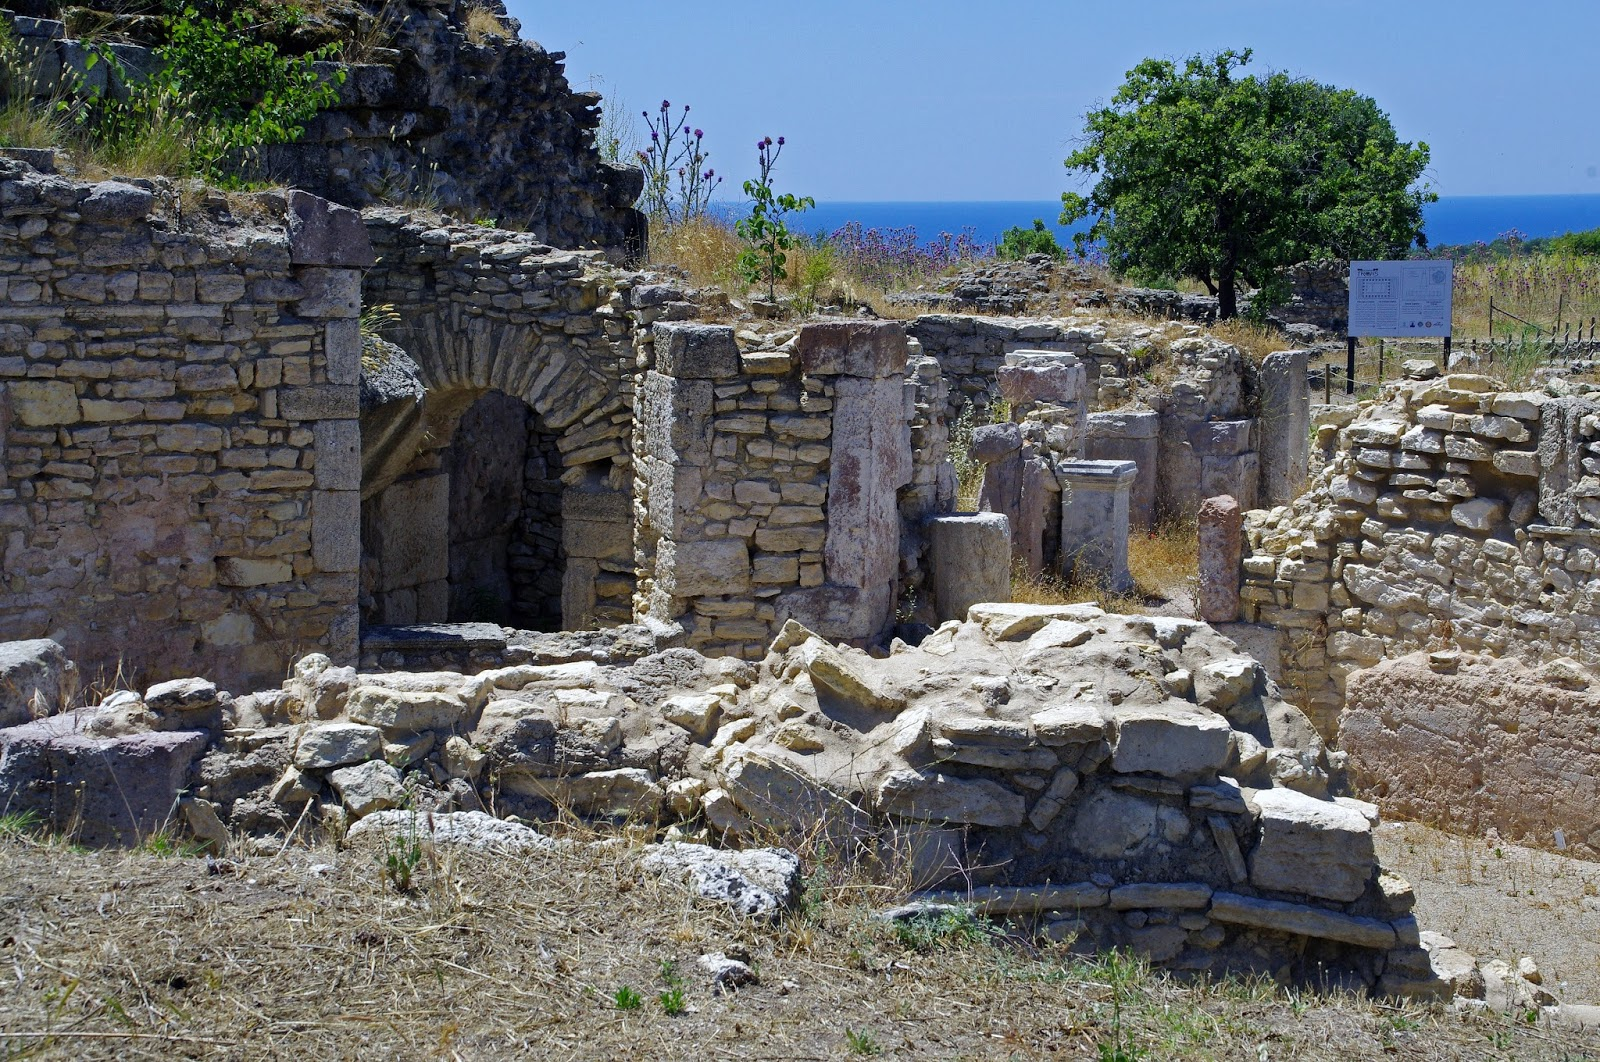 Beautiful ruins and scenery in Alexandria Troas